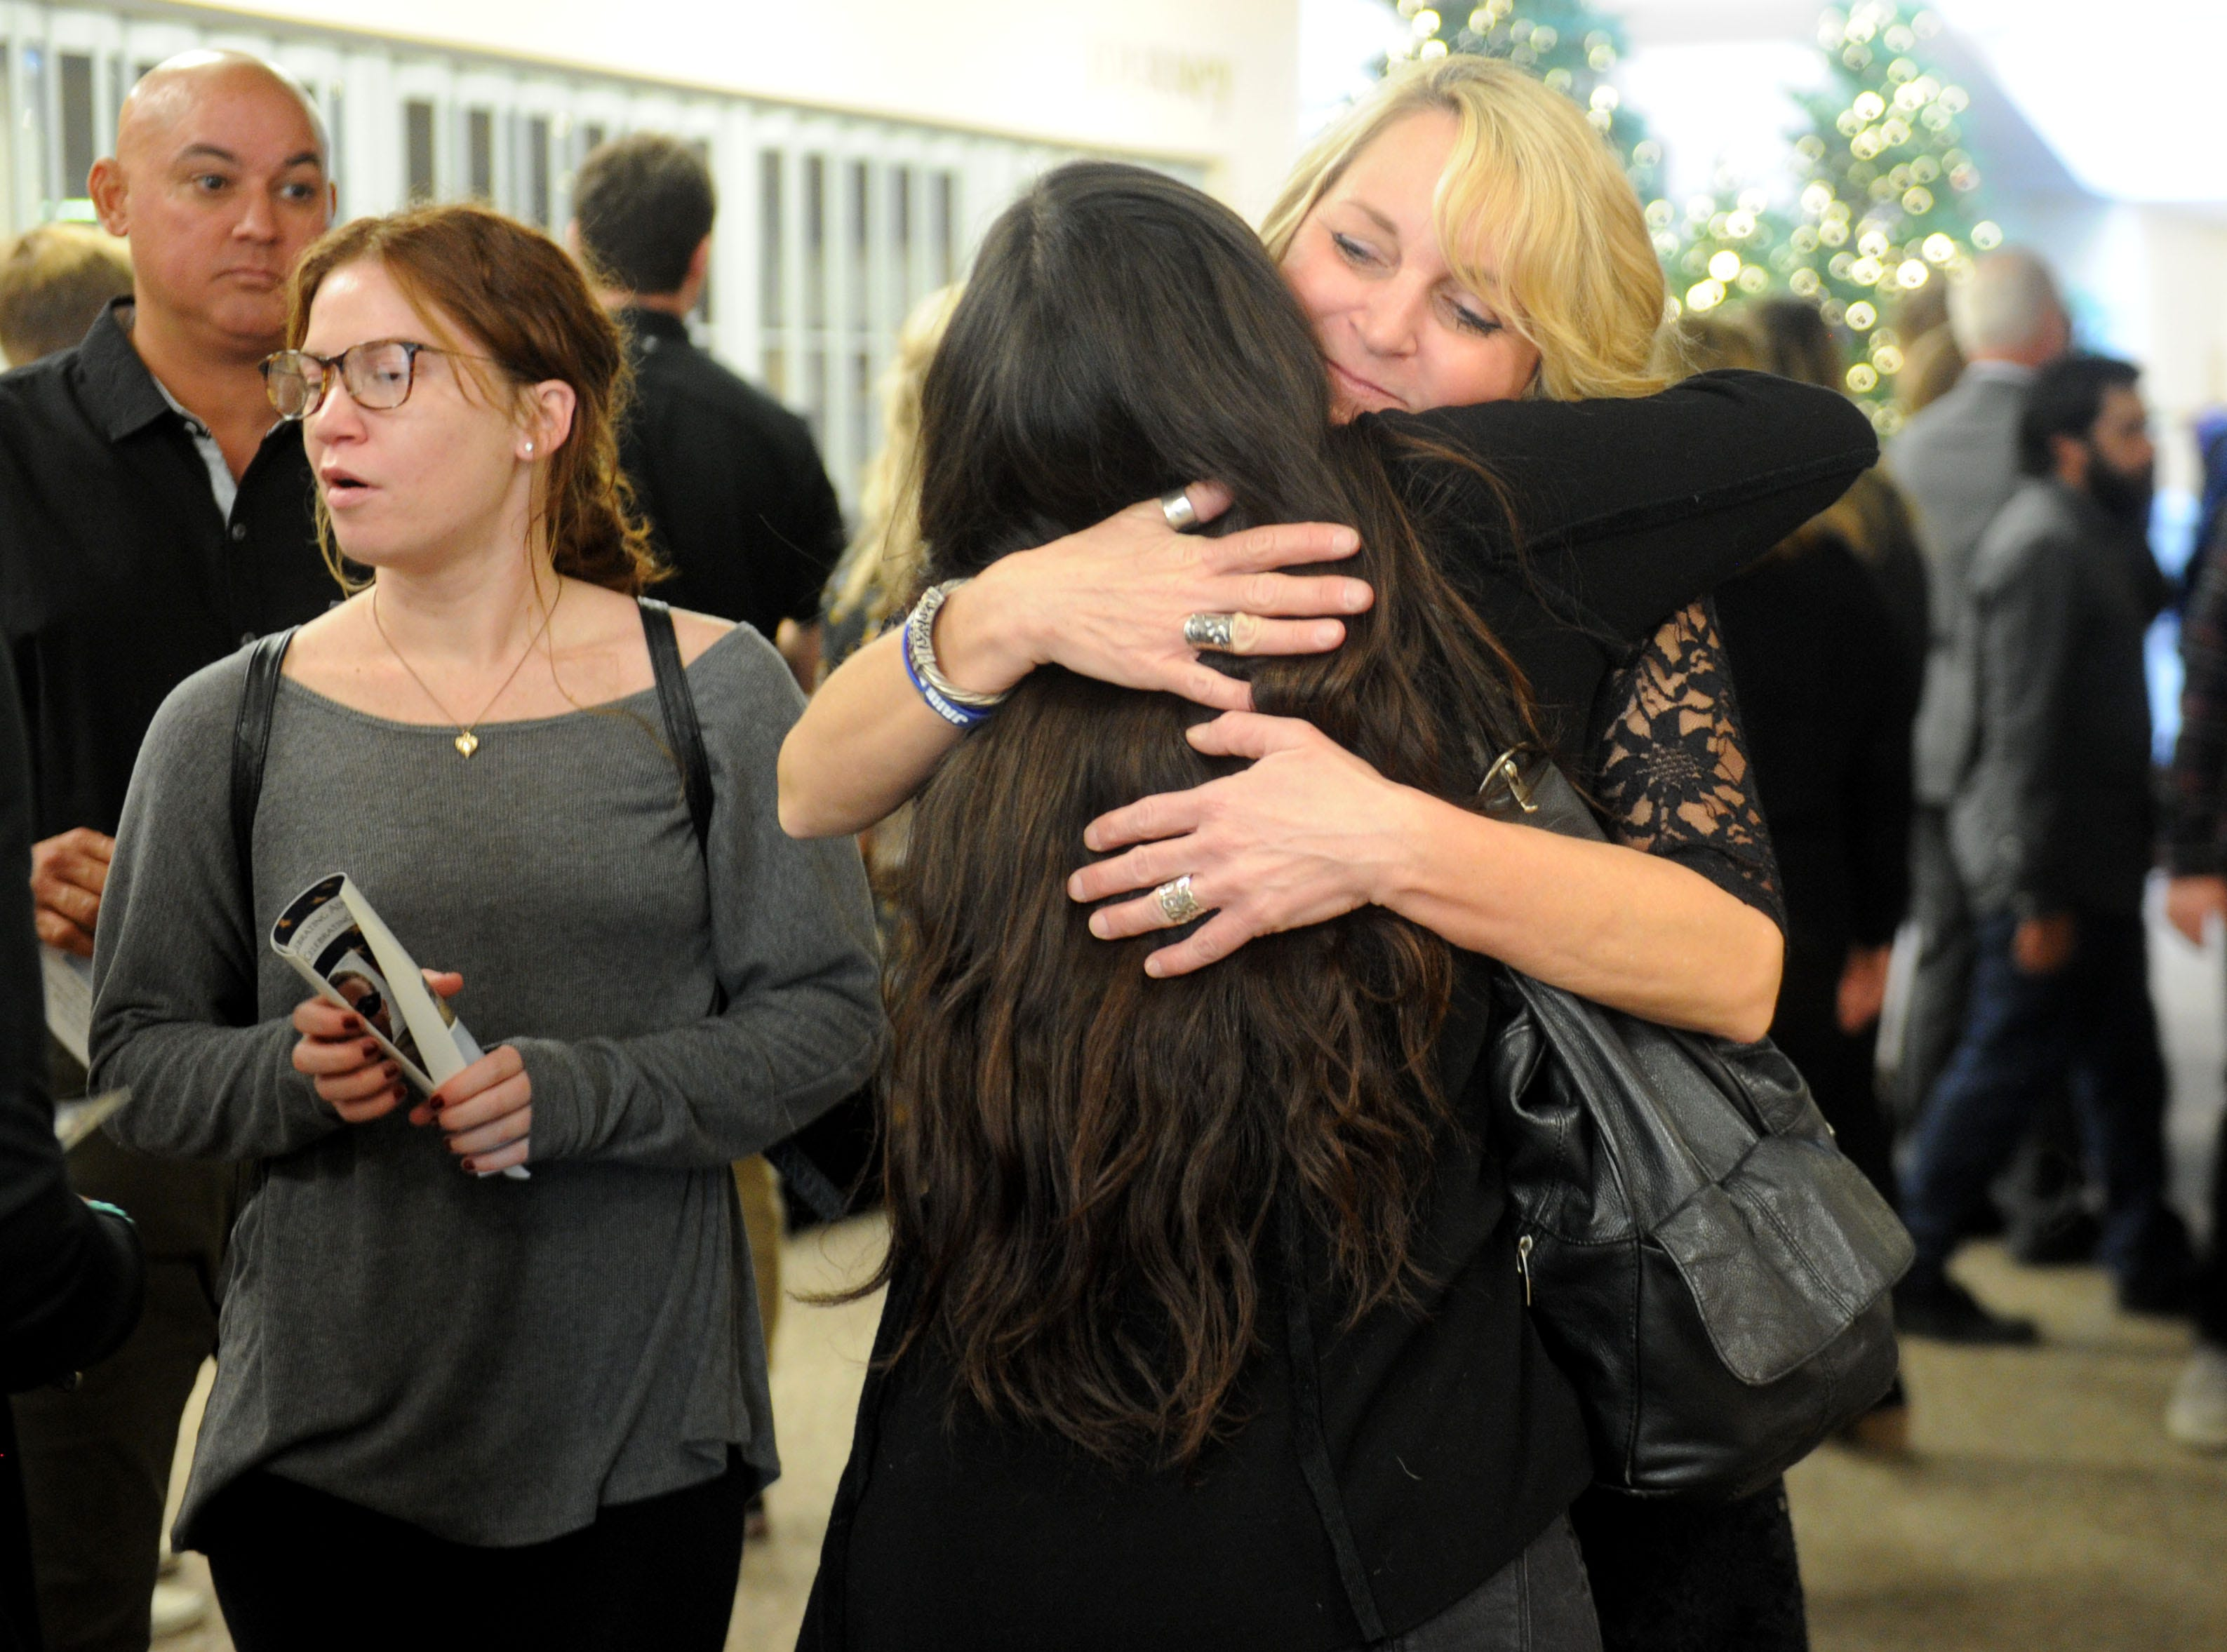 Kathy Dunham gets hugs from friends and family members at the start of the memorial service for her son Jake Dunham, one of those slain the night of Nov. 7 at the Borderline Bar & Grill in Thousand Oaks.